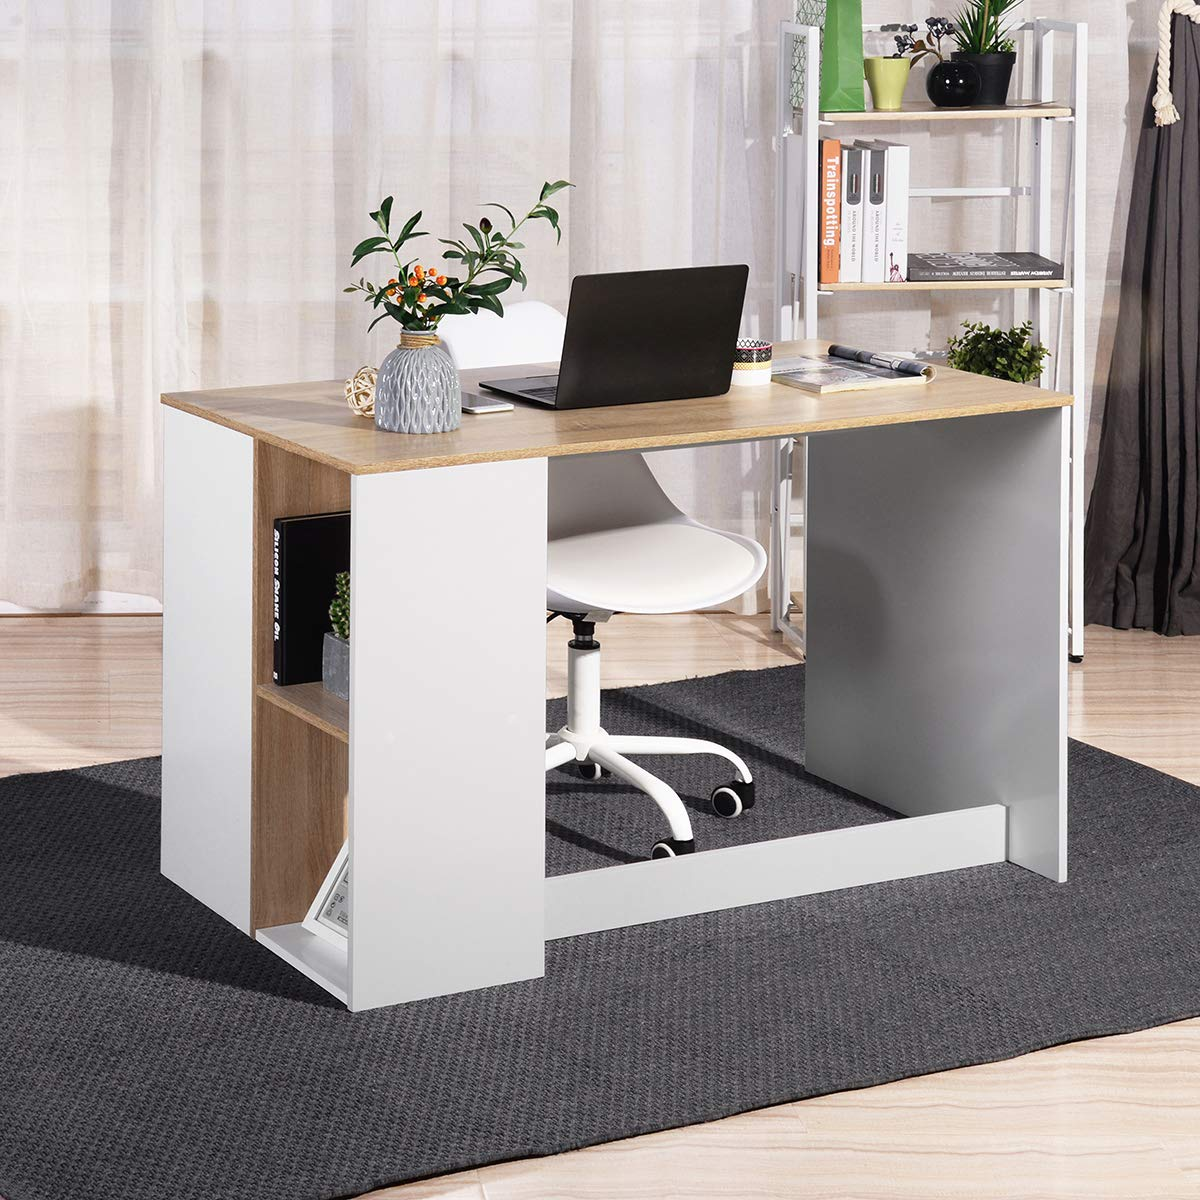 Coavas Office-Computer Desk with Storage, Study-Work Desk with 5 Shelves, Students-Writing Desk Home Laptop Study Table Modern Wood Hutch Large Workstation with Bookcase BREN11 /Beech and White by Coavas (Image #5)